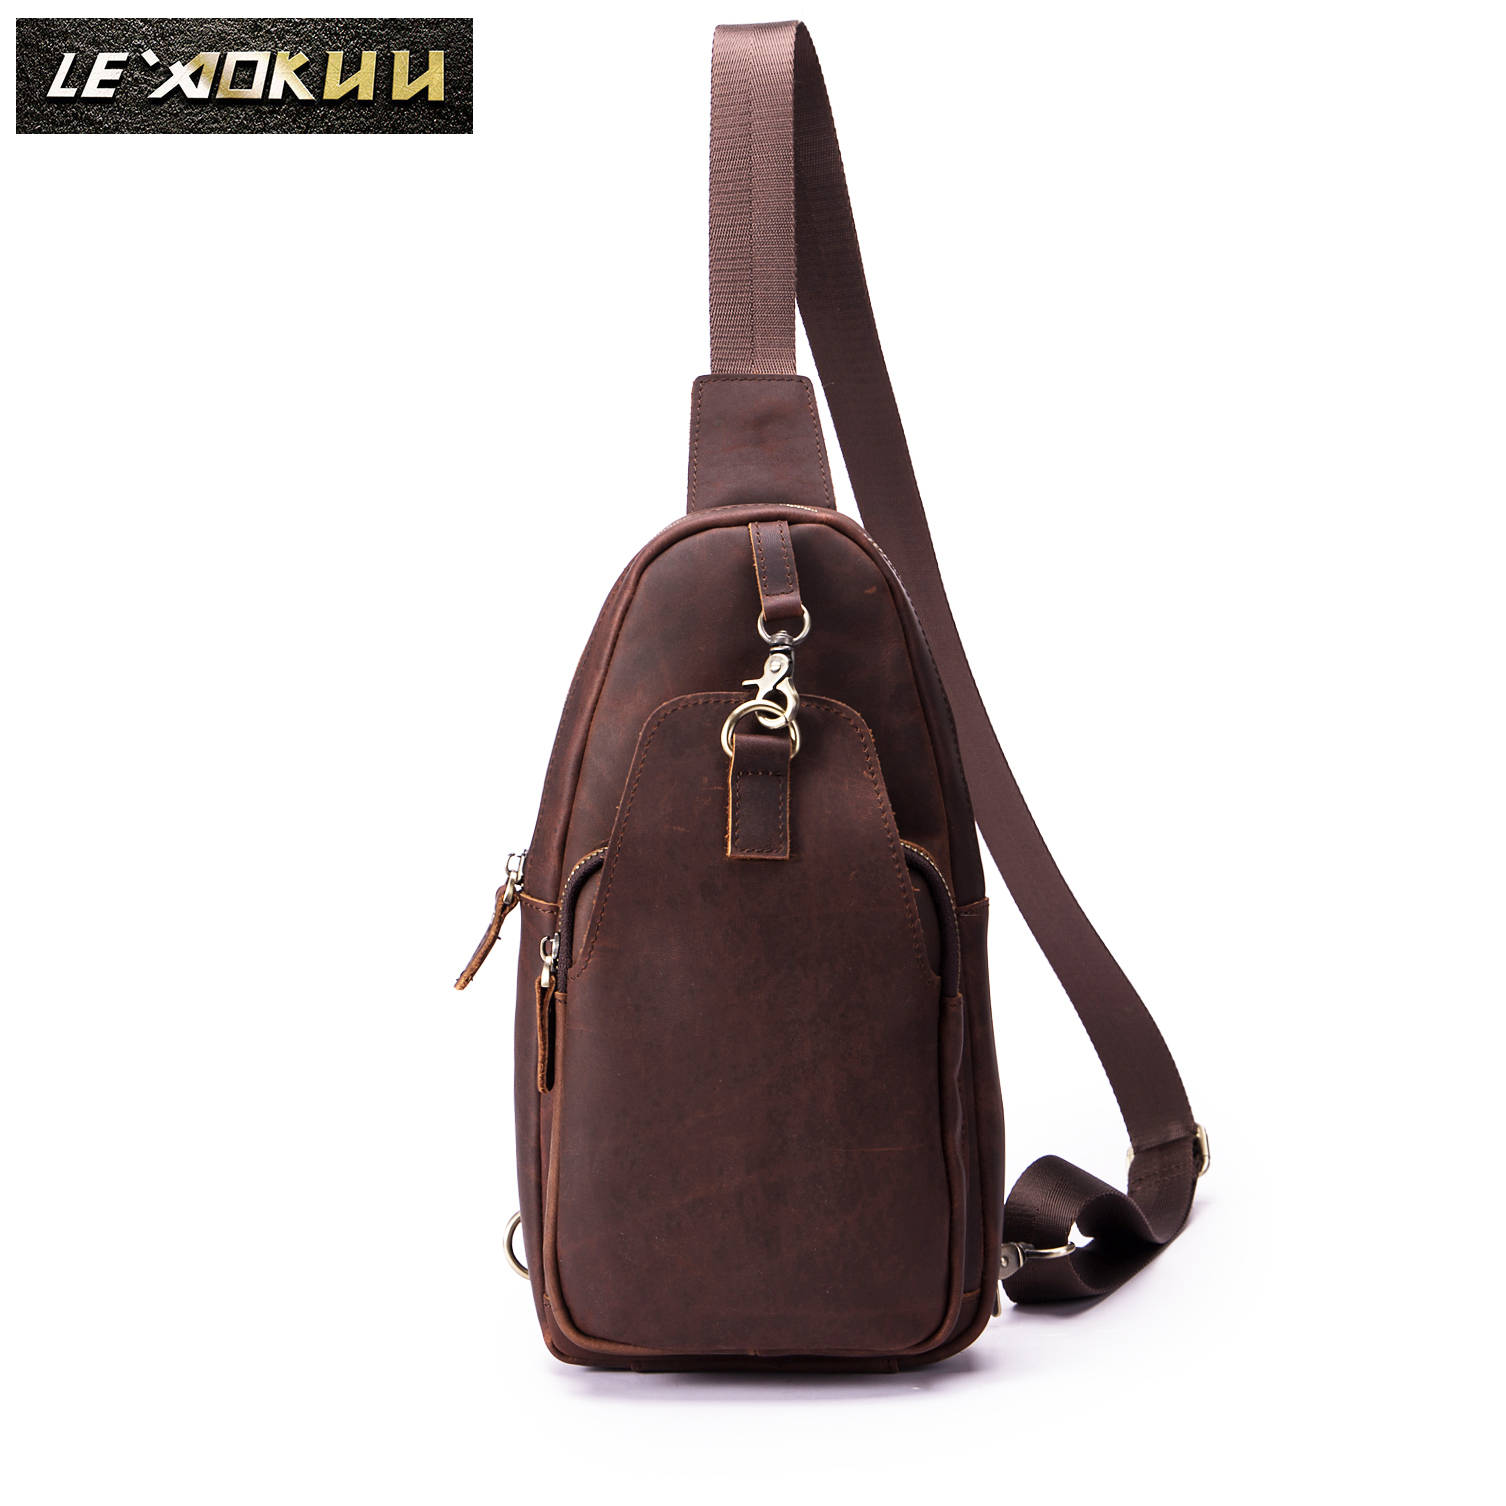 Men Quality Crazy Horse Leather Casual Fashion Crossbody Chest Sling Bag Design Travel One Shoulder Bag Daypack Male 812-23